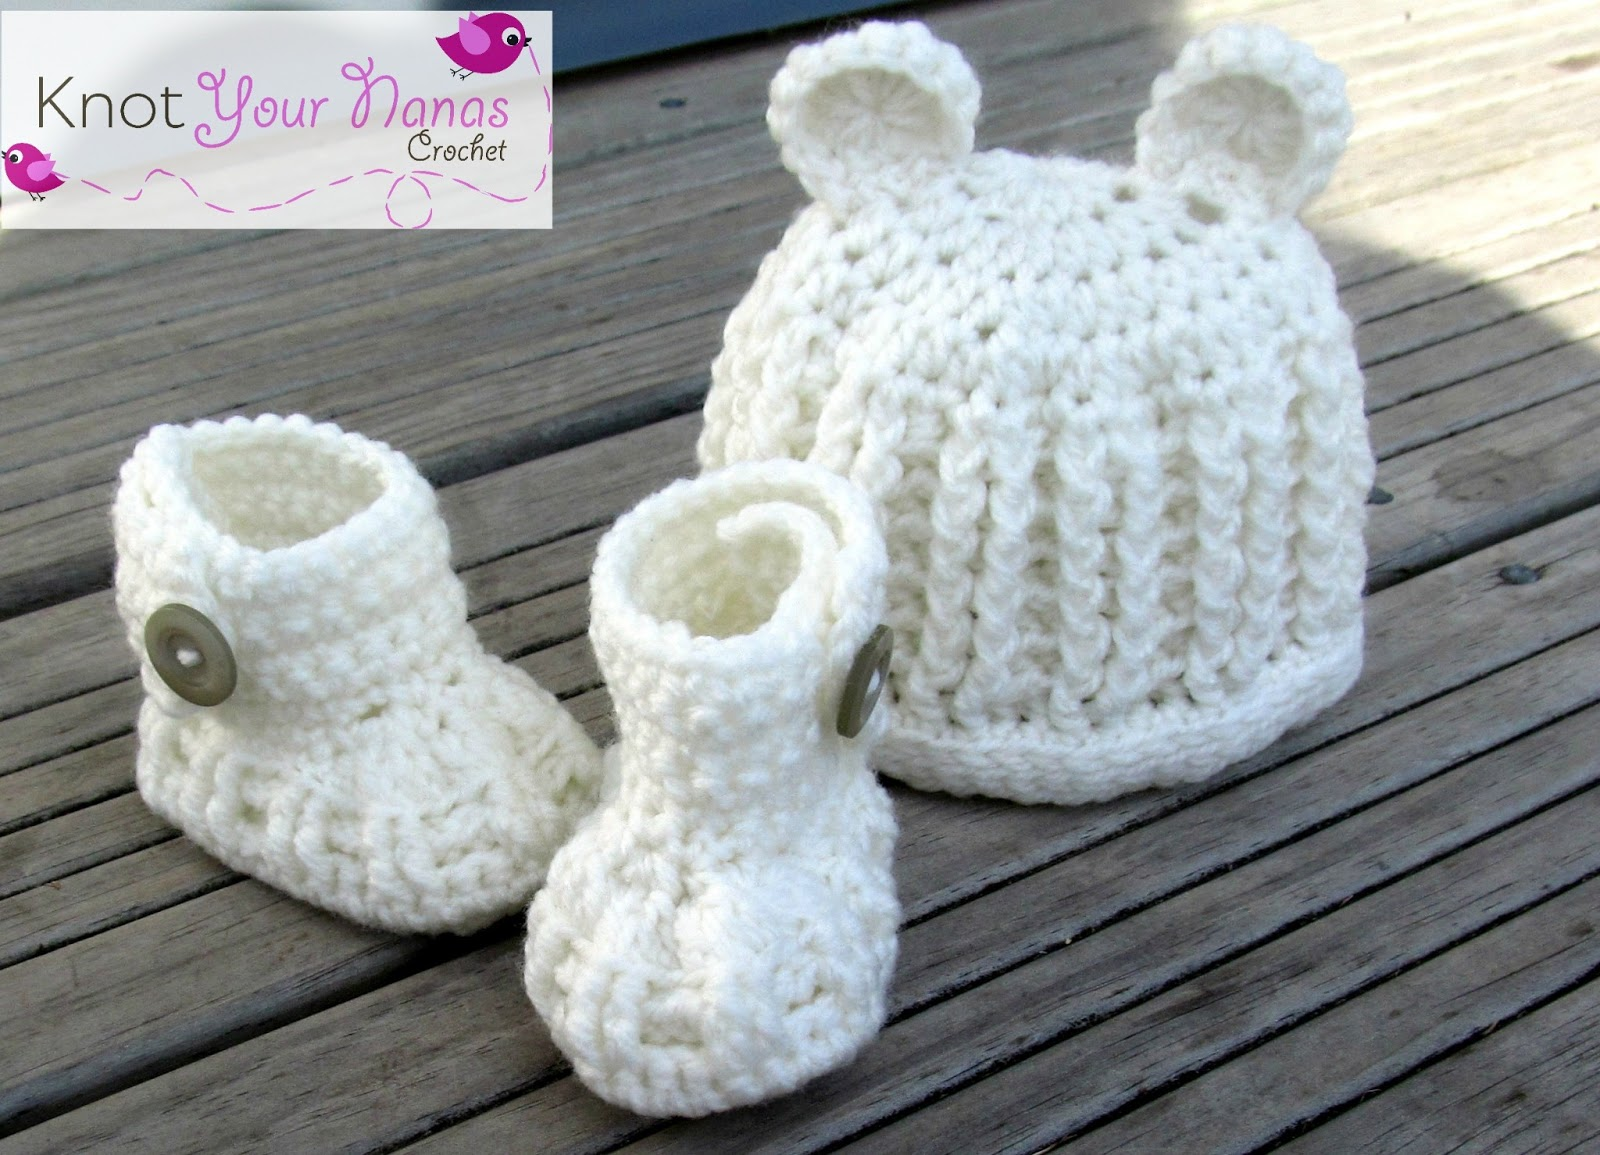 Knot Your Nanas Crochet: Crochet Newborn Booties